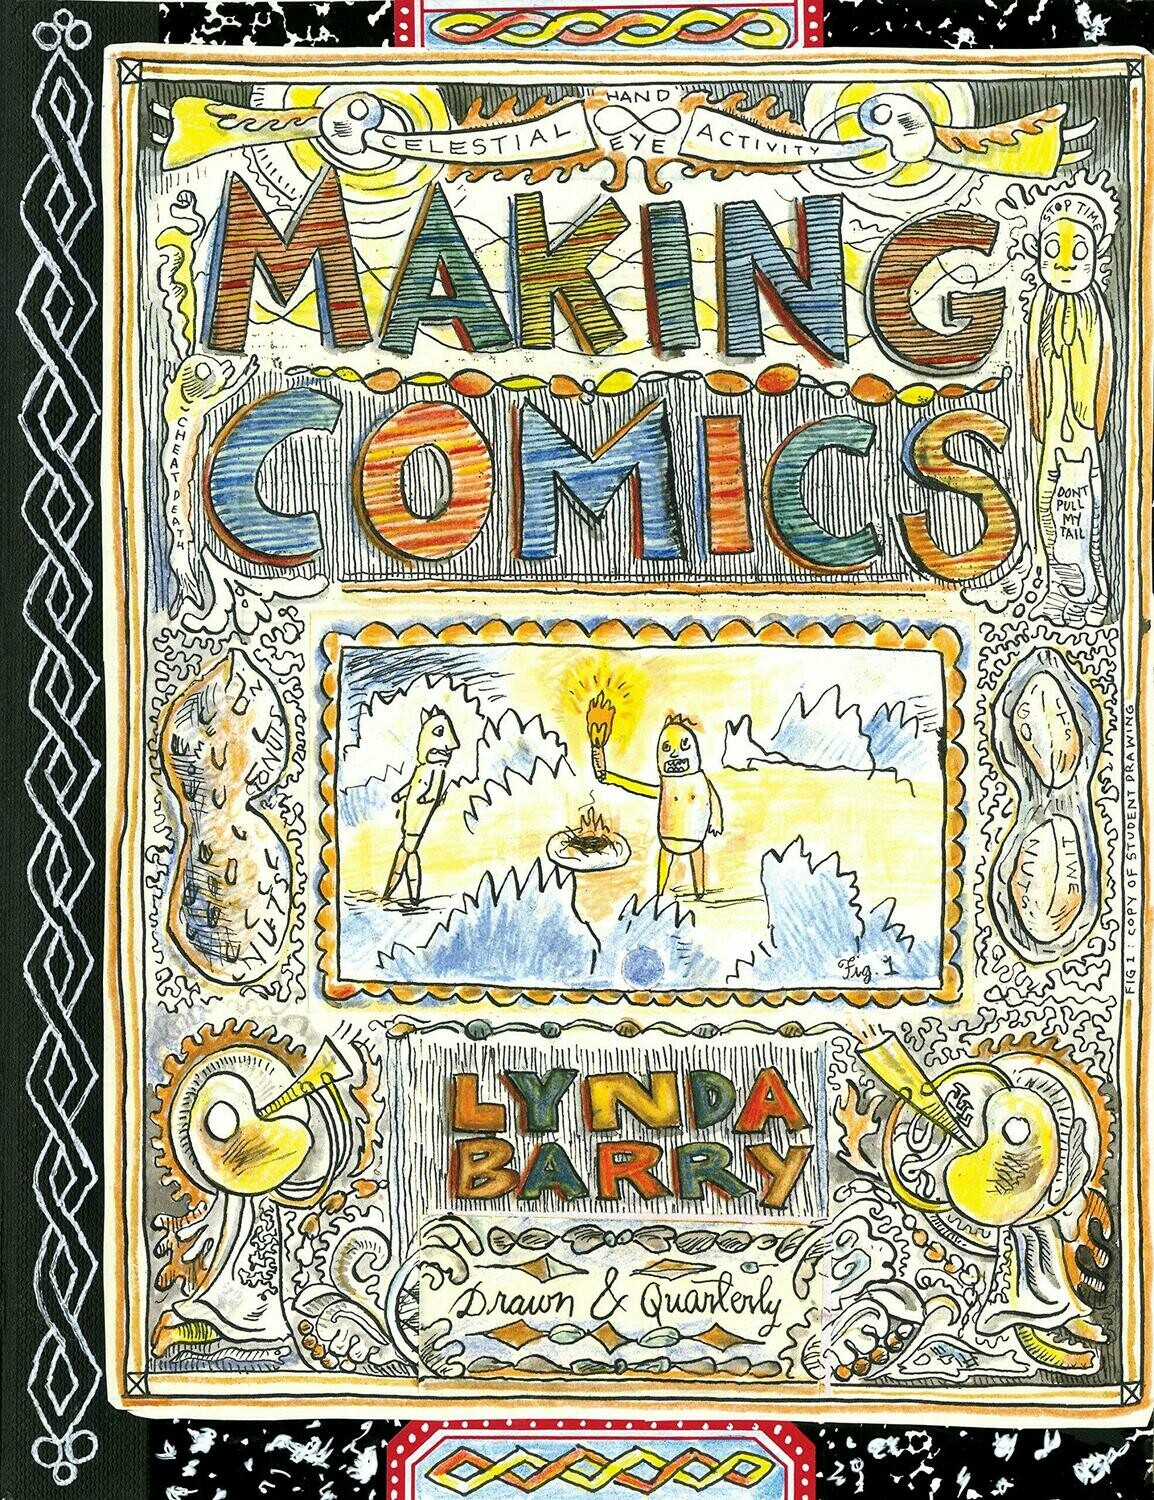 Linda Barry: Making Comics